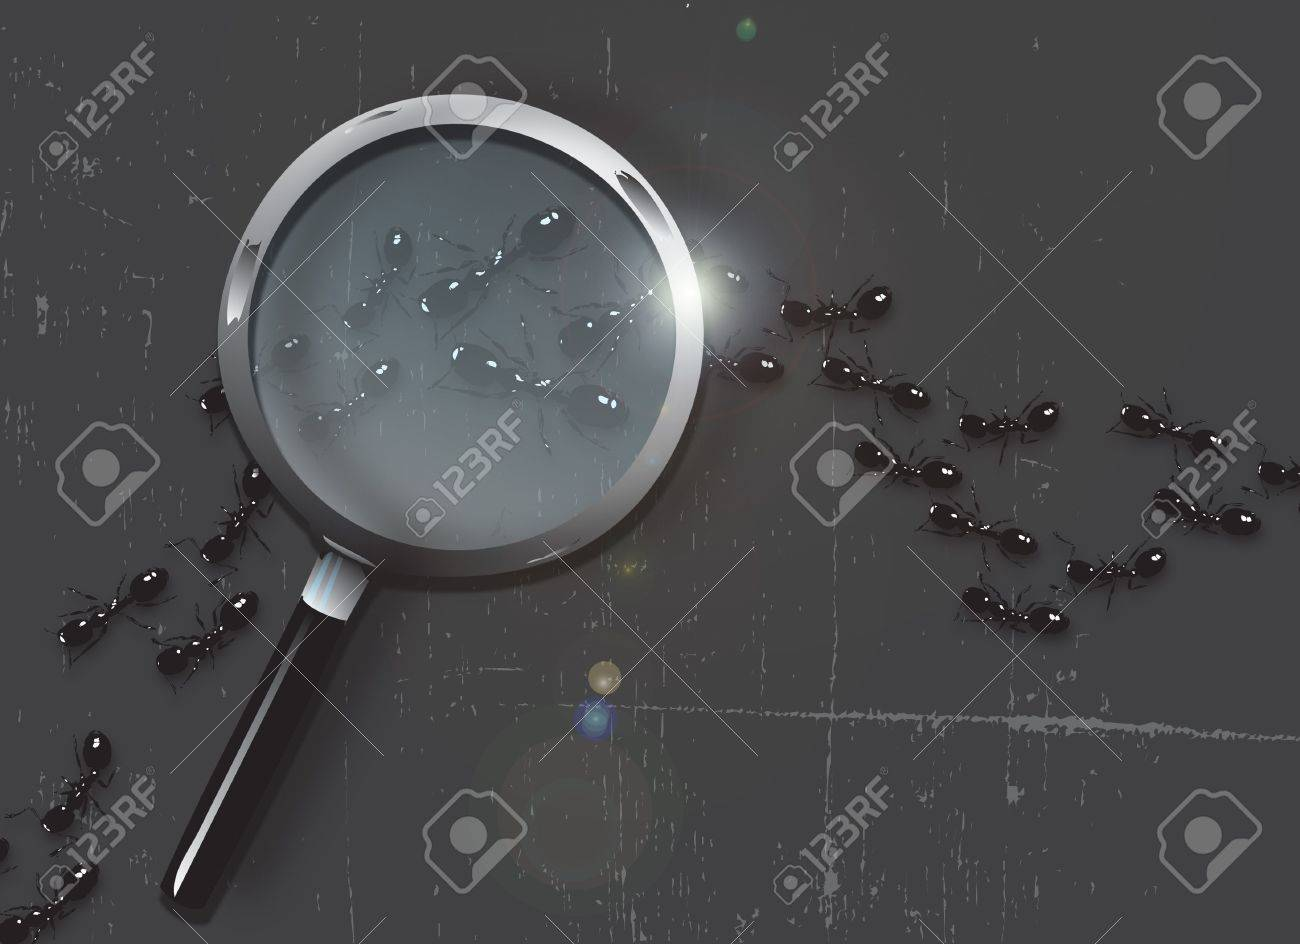 A trail of black ants on a slate grey grunge style background. A magnifying glass hovers over the ants. Stock Photo - 6030659